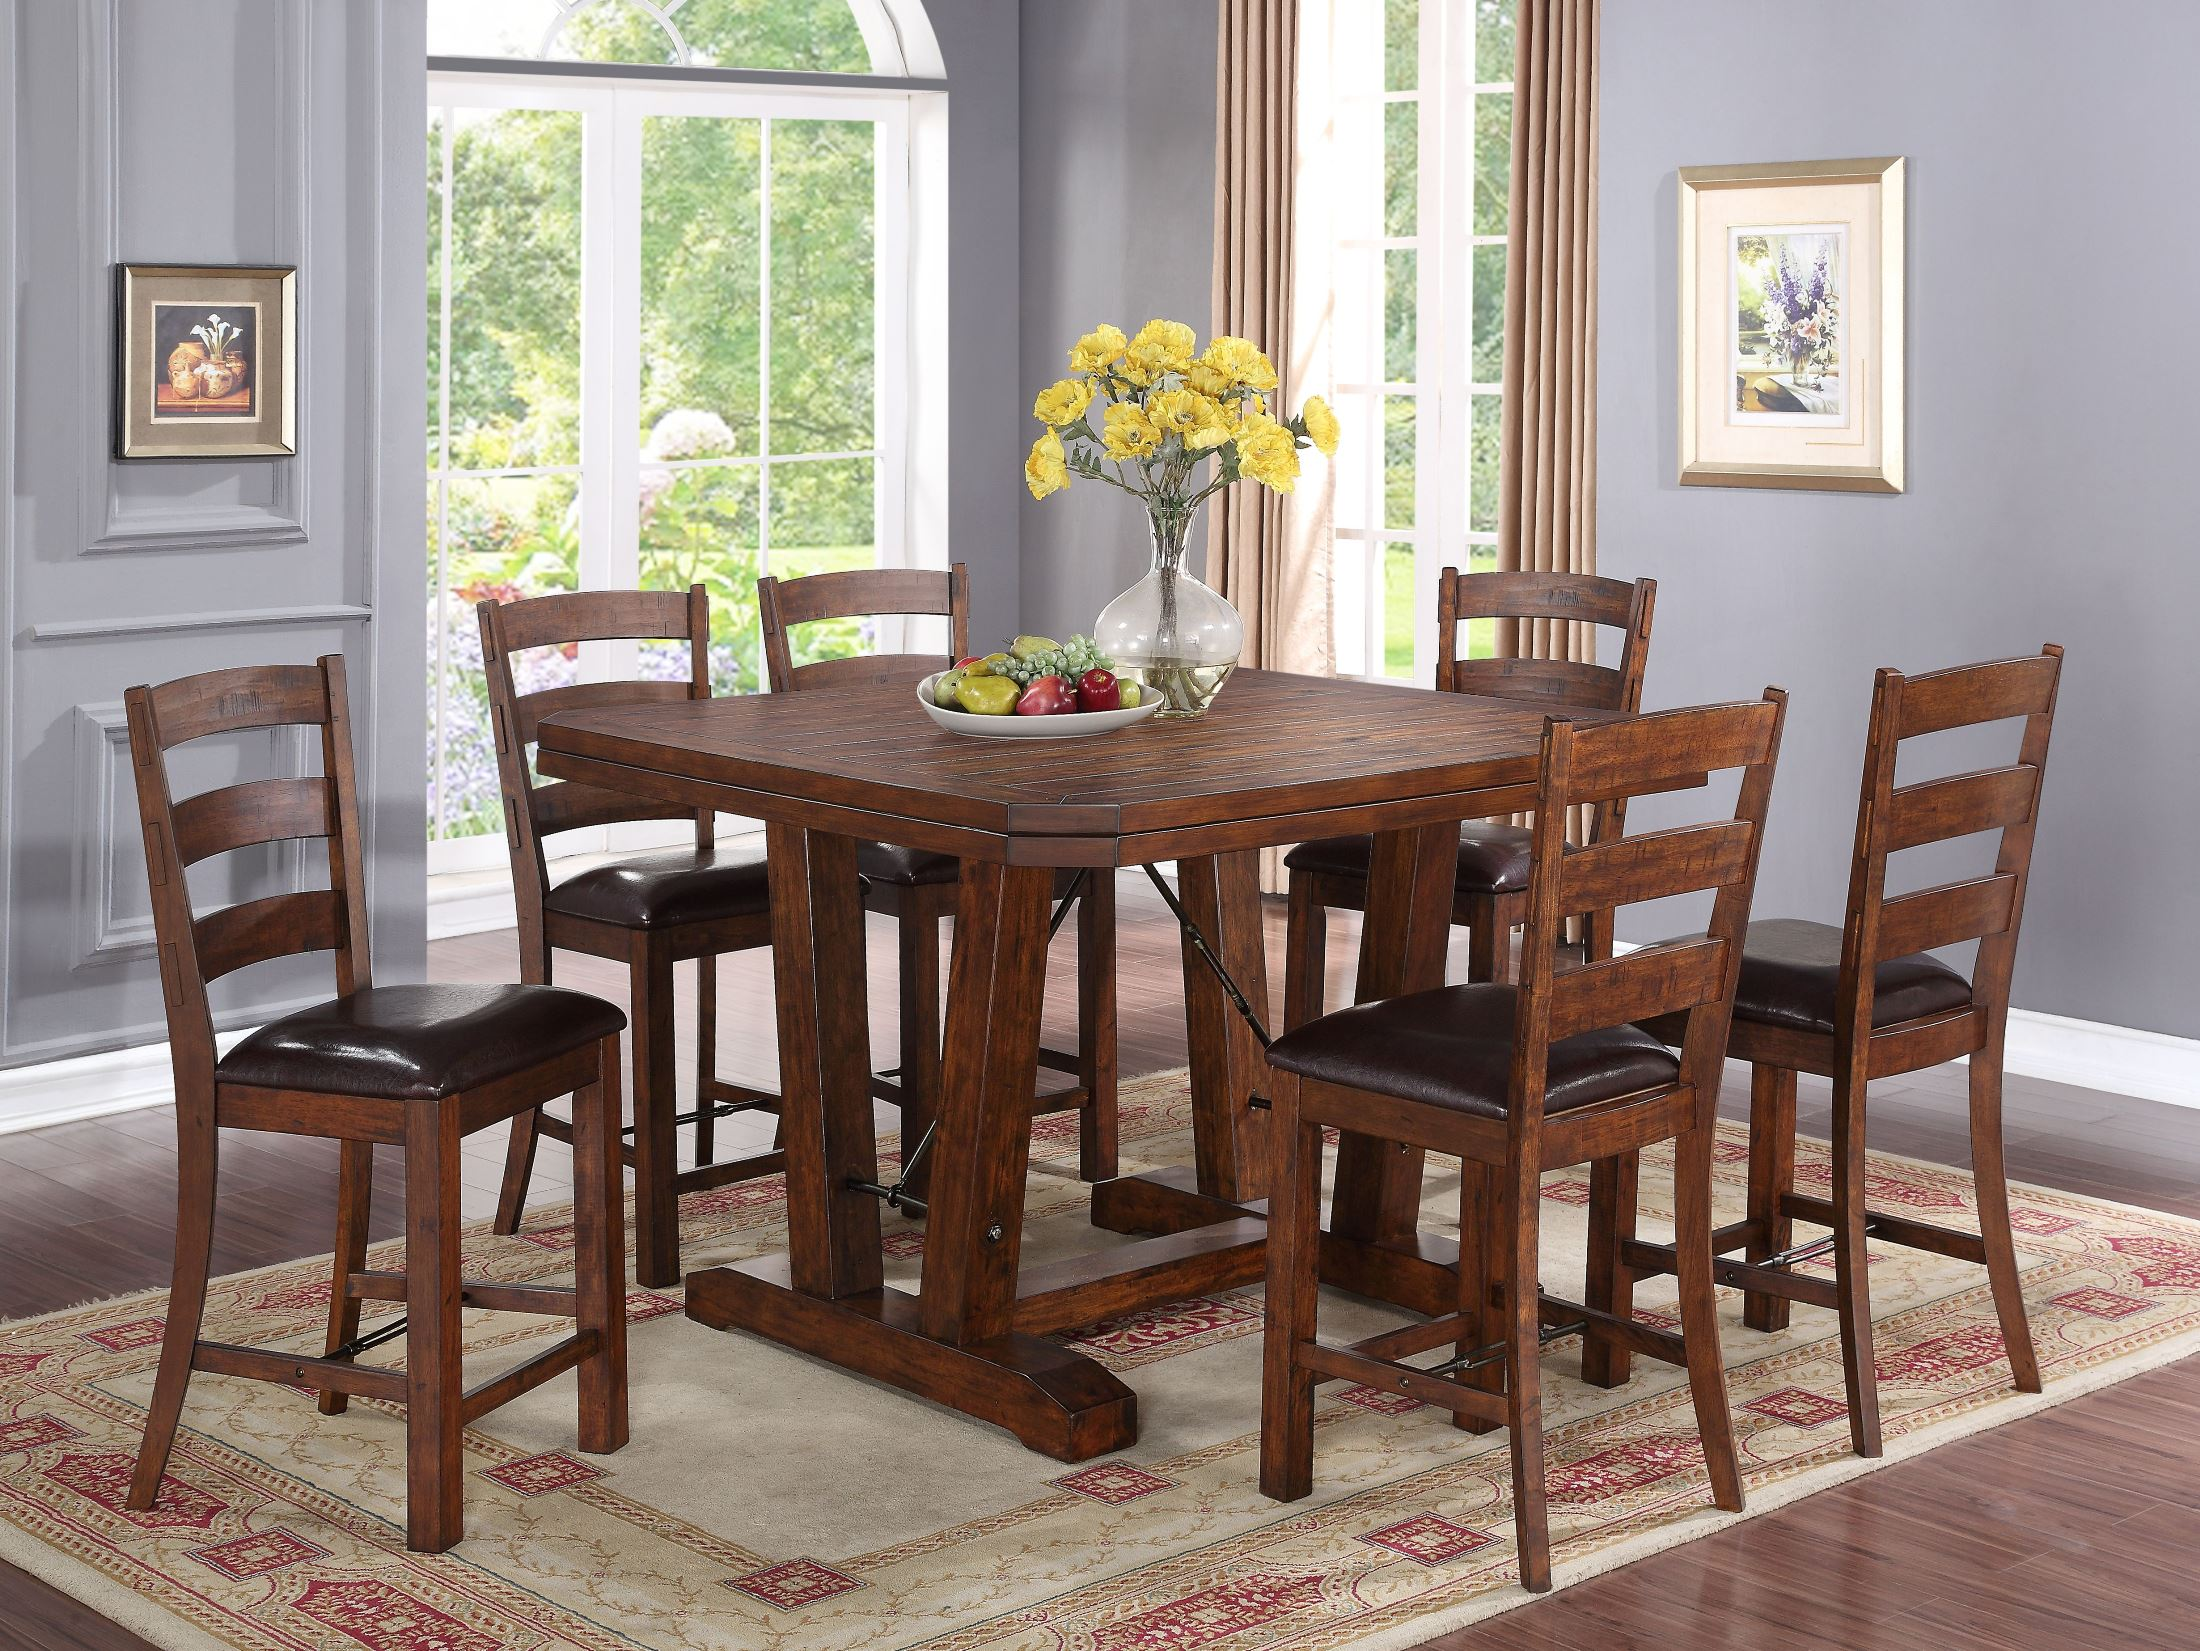 lanesboro distressed walnut counter height dining room set by new